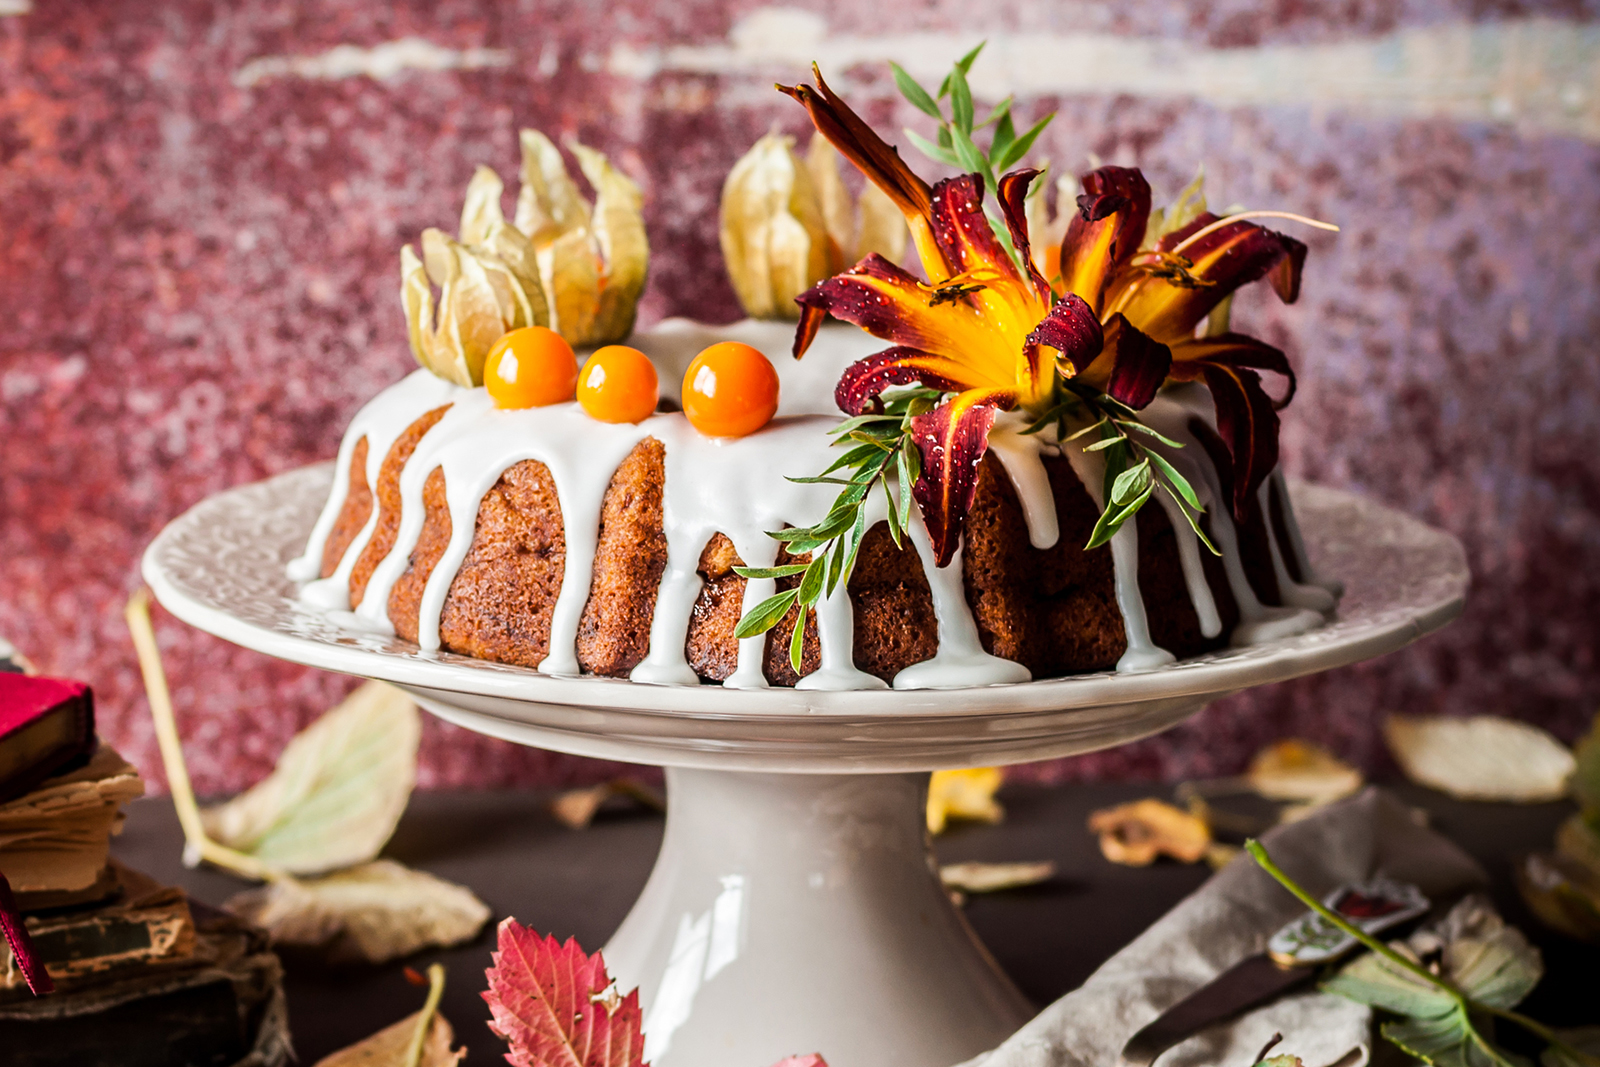 Ideas For Decorating A Bundt Cake Lovetoknow